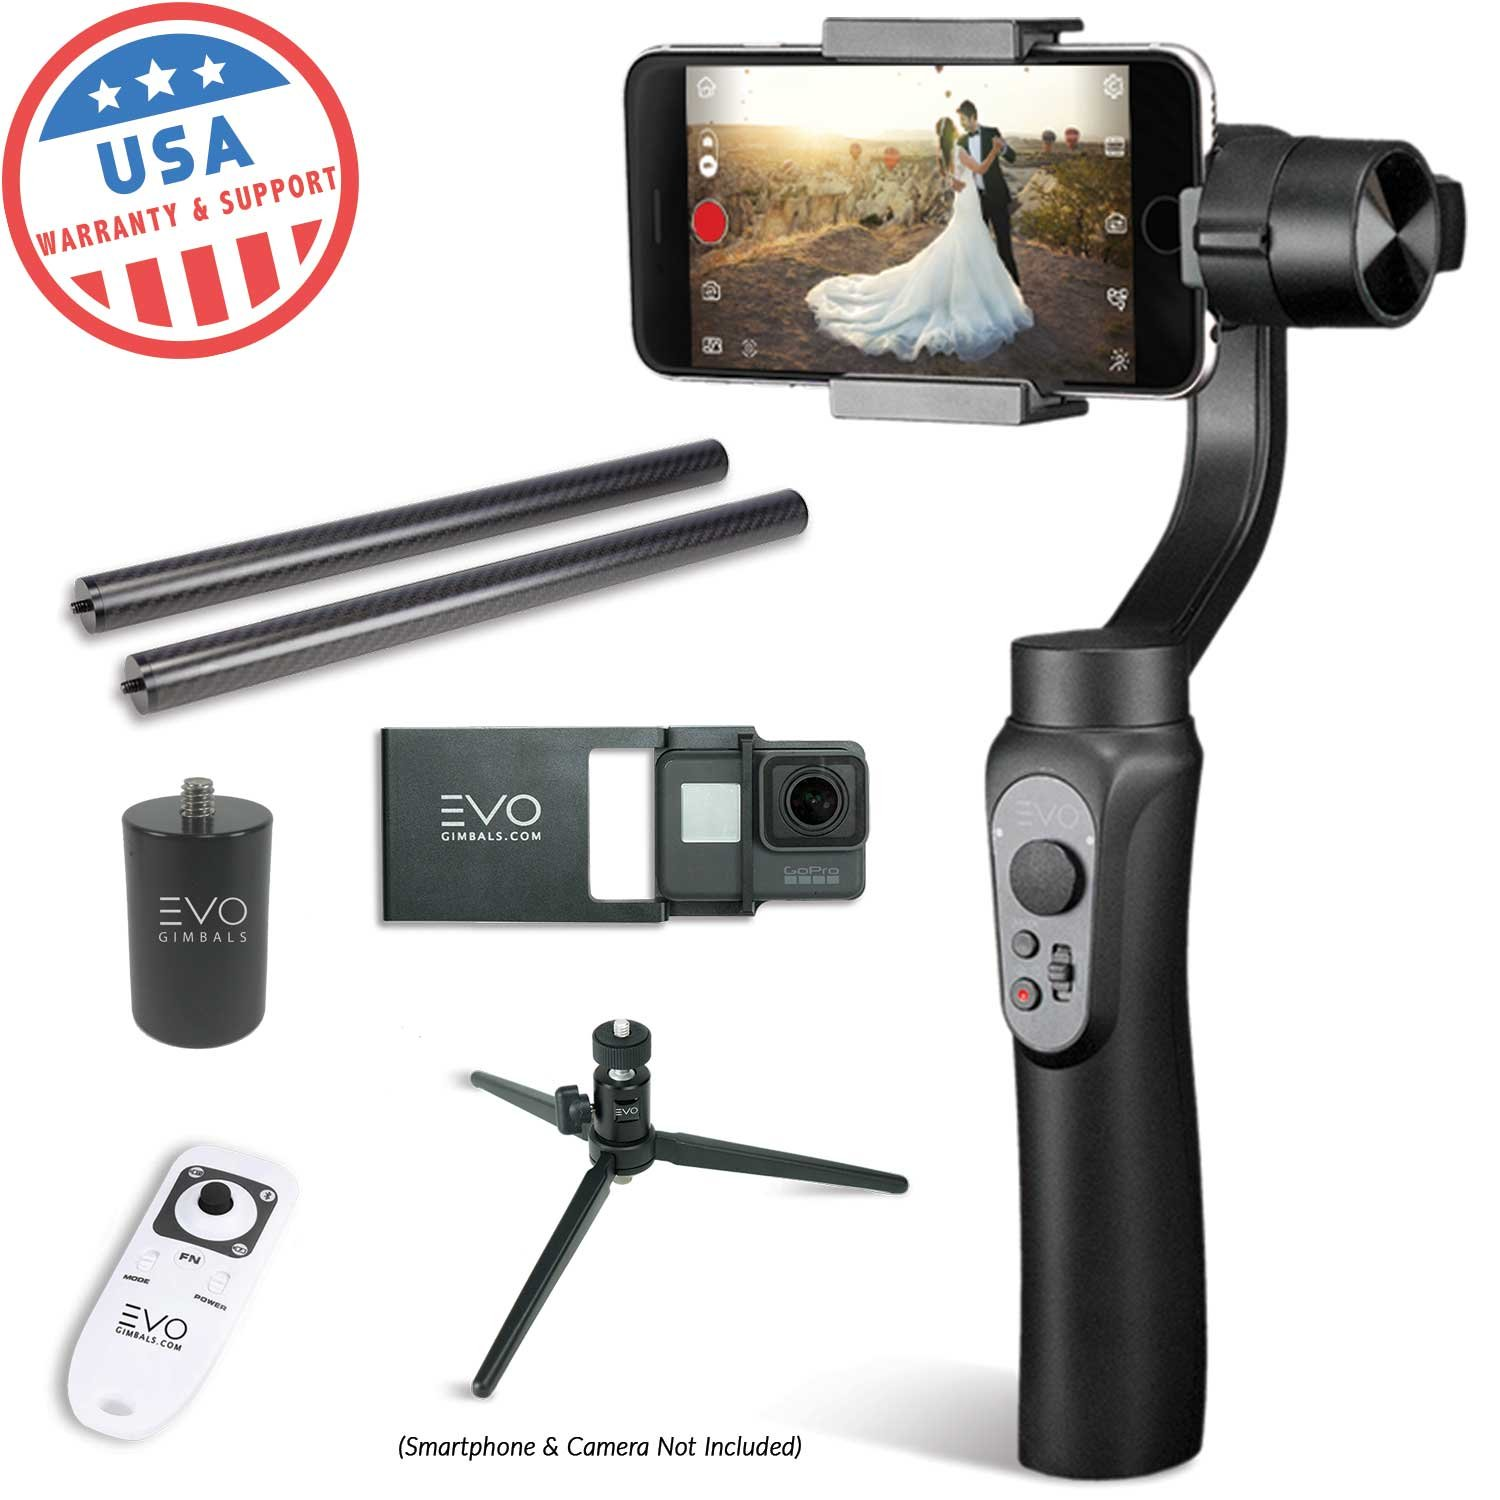 EVO Shift Camera Stabilizer Handheld Gimbal for iPhone or Android Smartphones, Bundle Includes EVO Shift, GoPro Adapter Plate, Tripod, Wireless Remote Gen2, 25mm CF Poles, PA-100 Adapter (7 Items) by EVO Gimbals